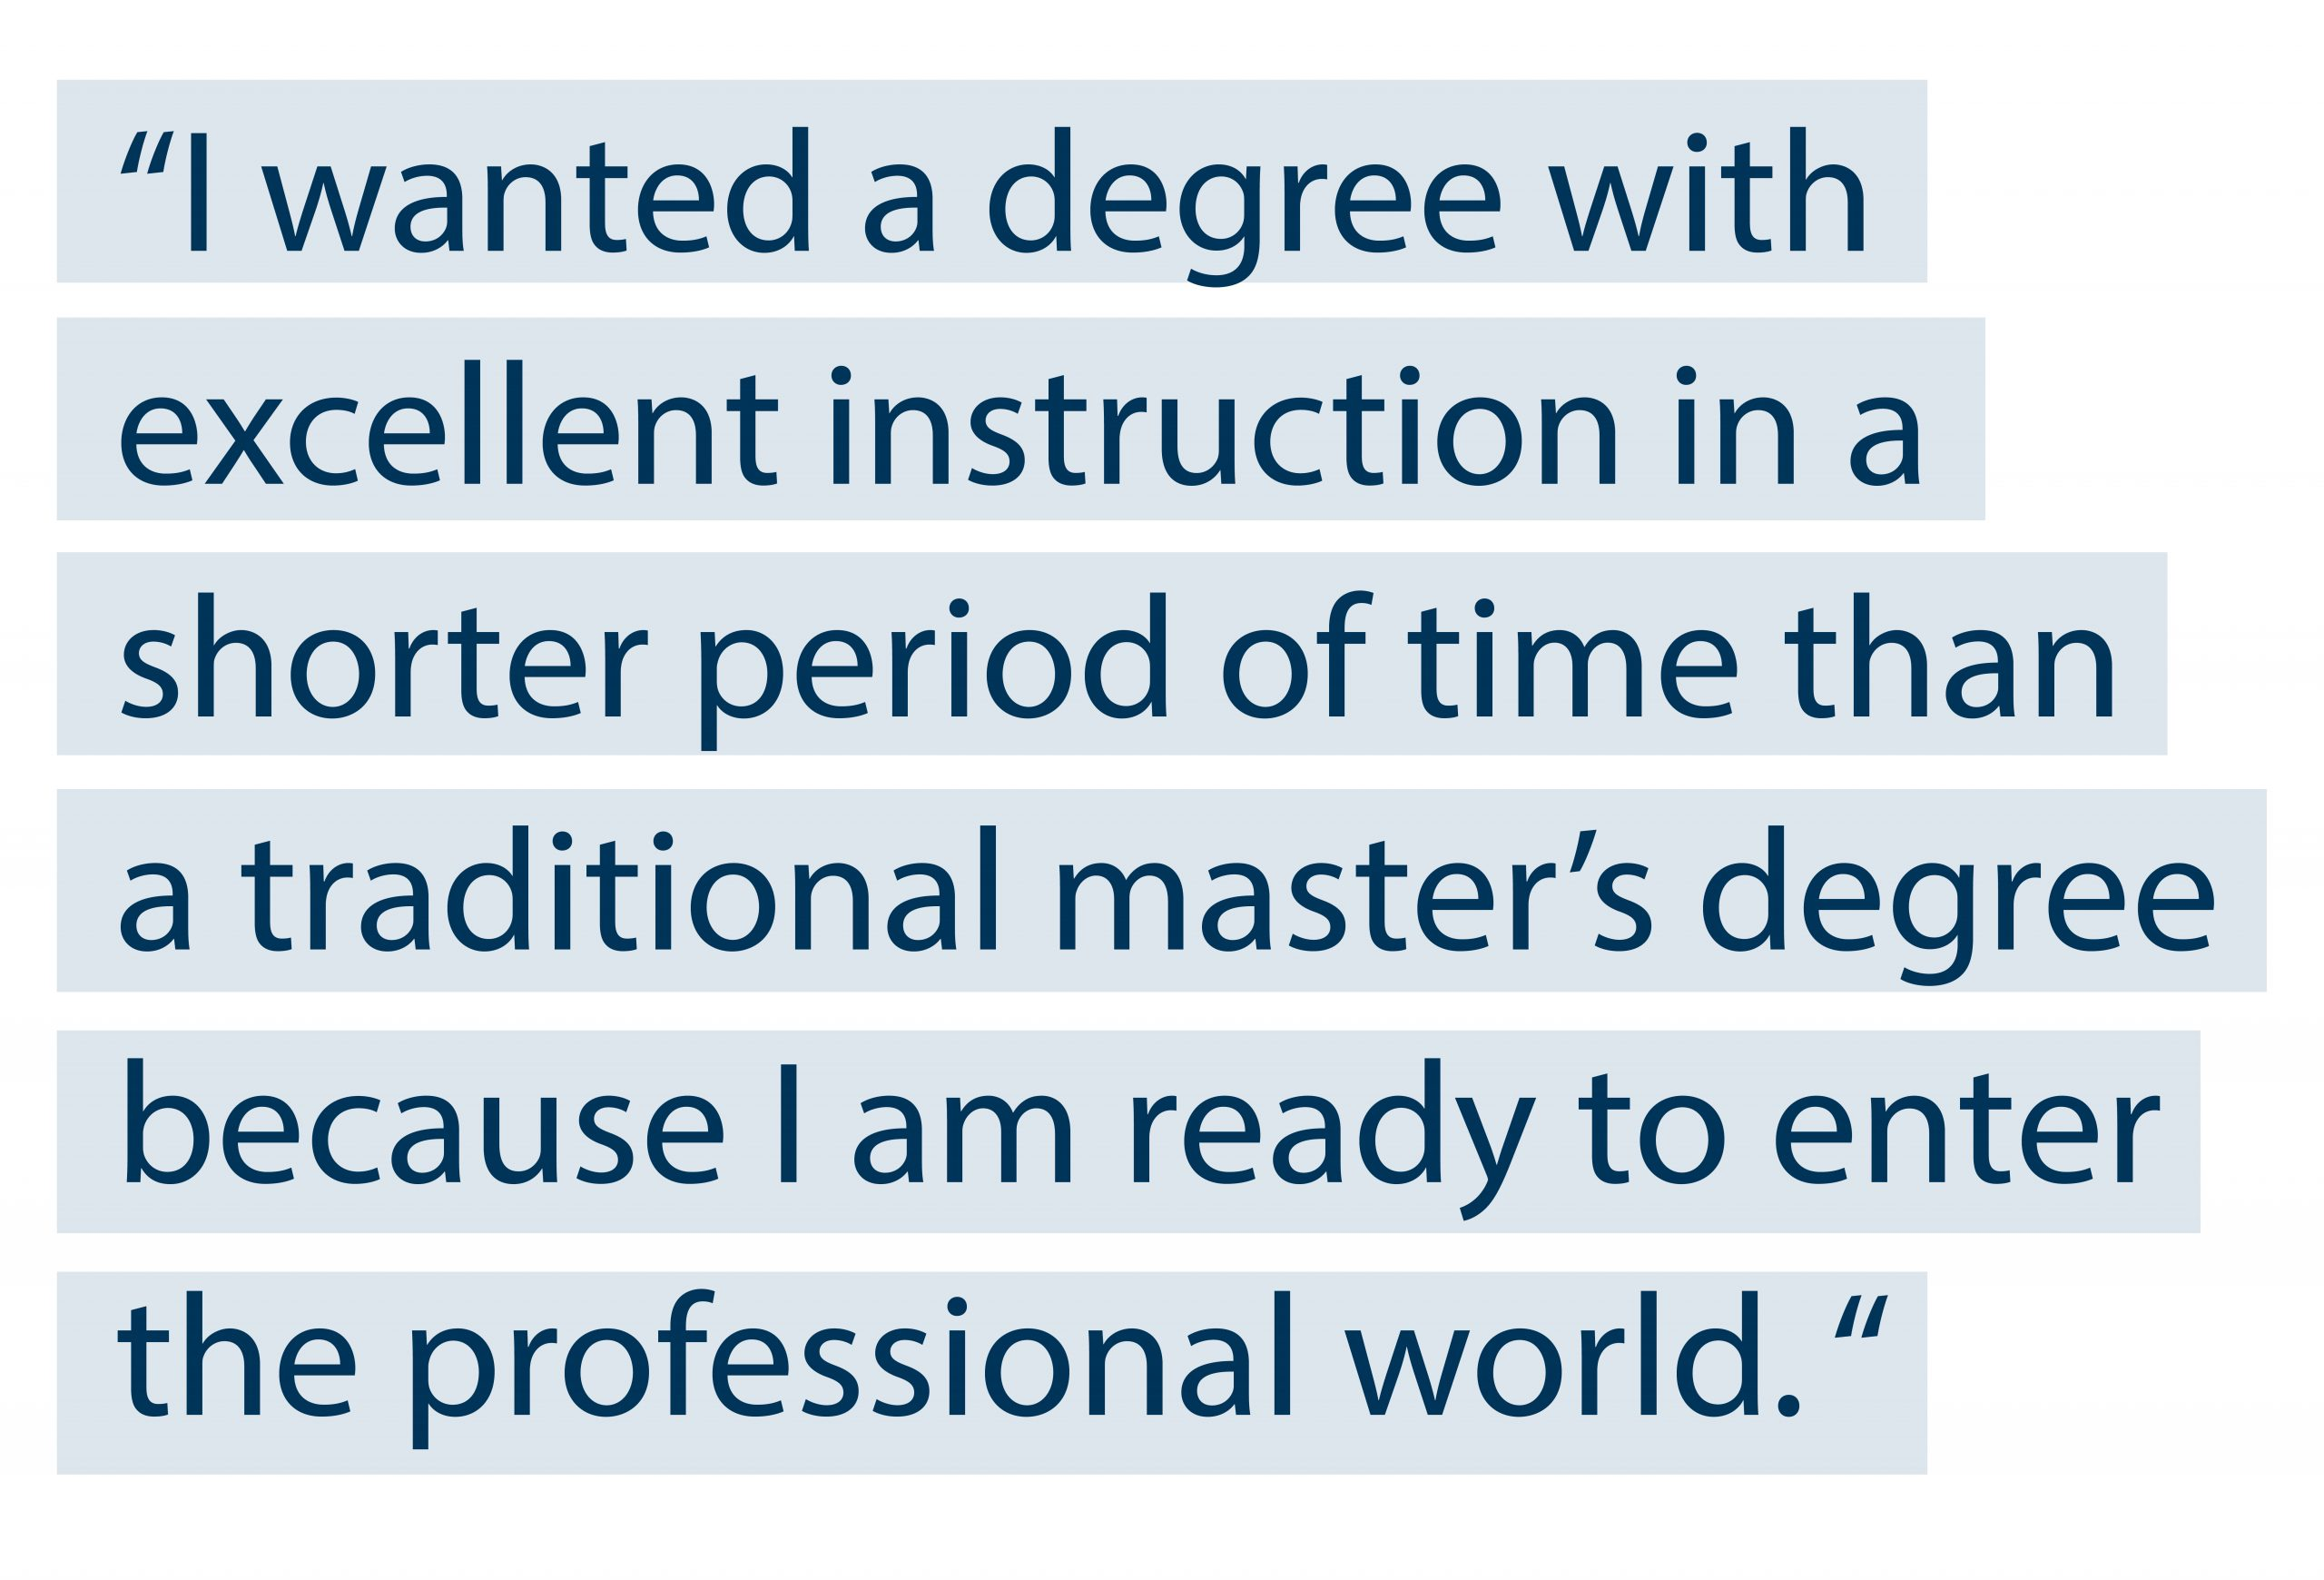 """I wanted a degree with excellent instruction in a shorter period of time than a traditional master's degree because I am ready to enter the professional world."""